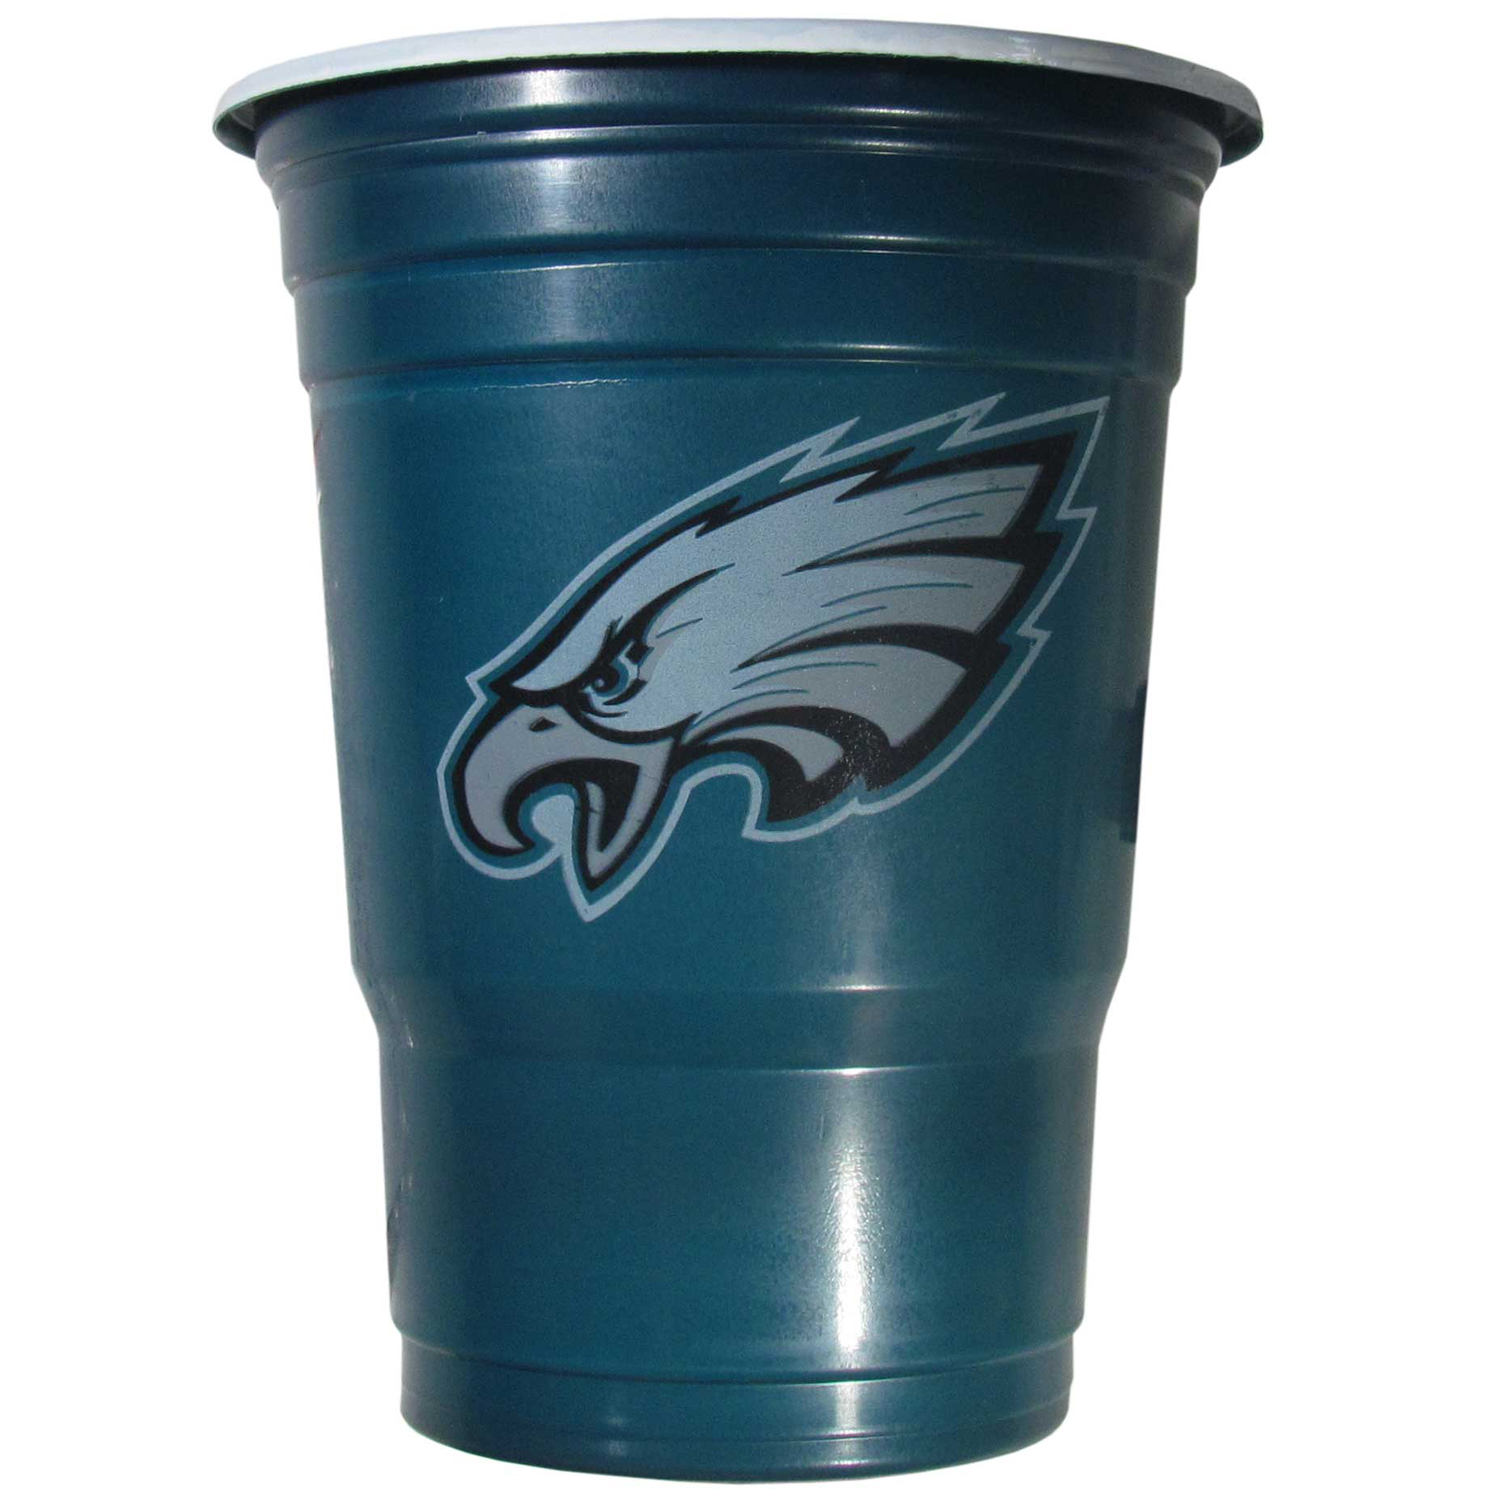 Philadelphia Eagles Plastic Game Day Cups 2 sleeves of 18 (36 Cups) - Our 18 ounce game day cups are what every tailgating or backyard events needs! The cups feature a big Philadelphia Eagles logo so you can show off your team pride. The popular 18 ounce size is perfect for drinks or ping pong balls! 2 sleeves of 18 cups, 36 cups in total.